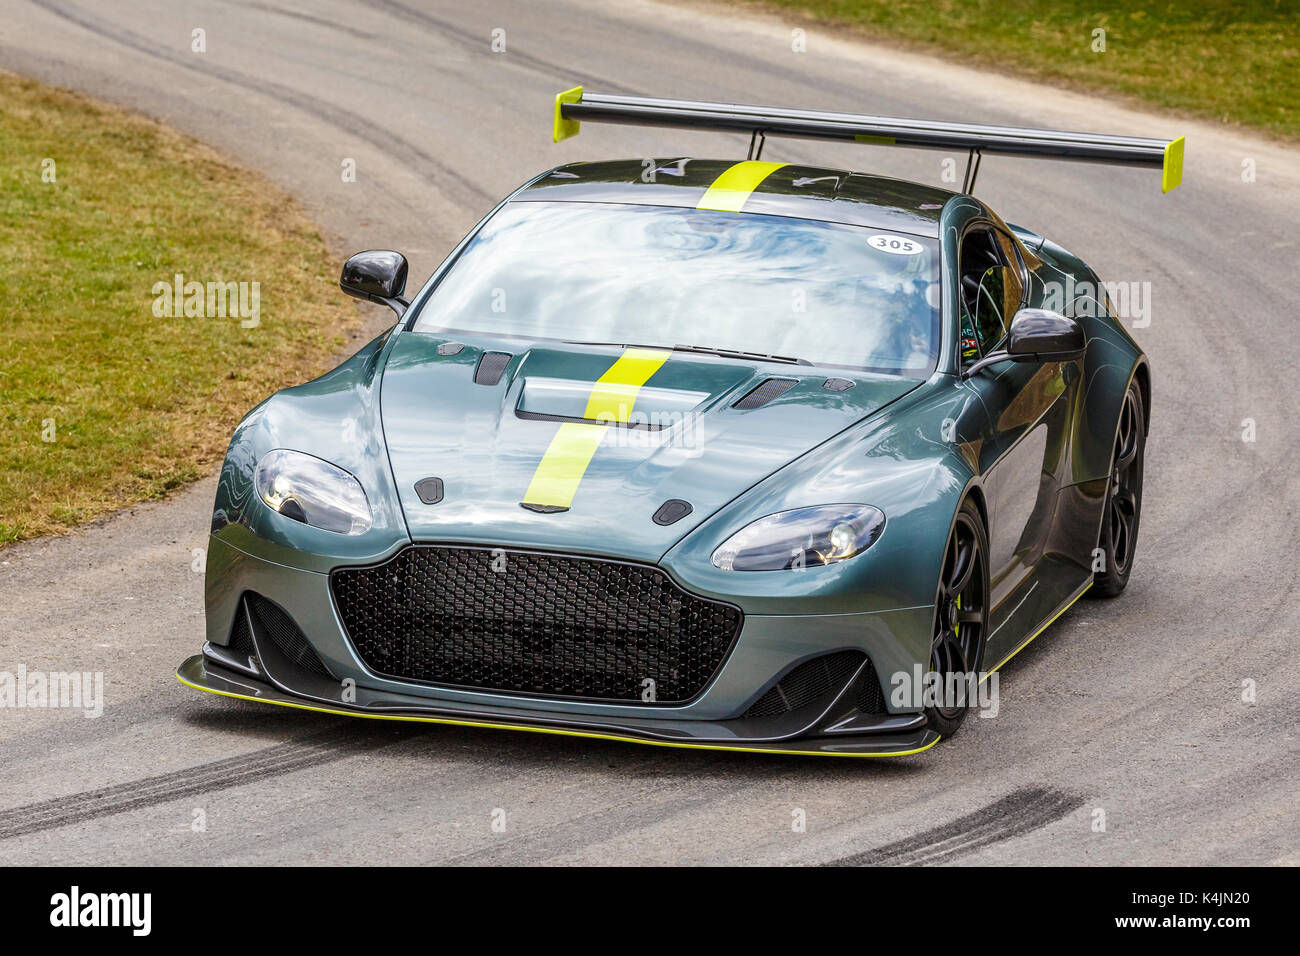 2017 Aston Martin Vantage Amr Pro At The 2017 Goodwood Festival Of